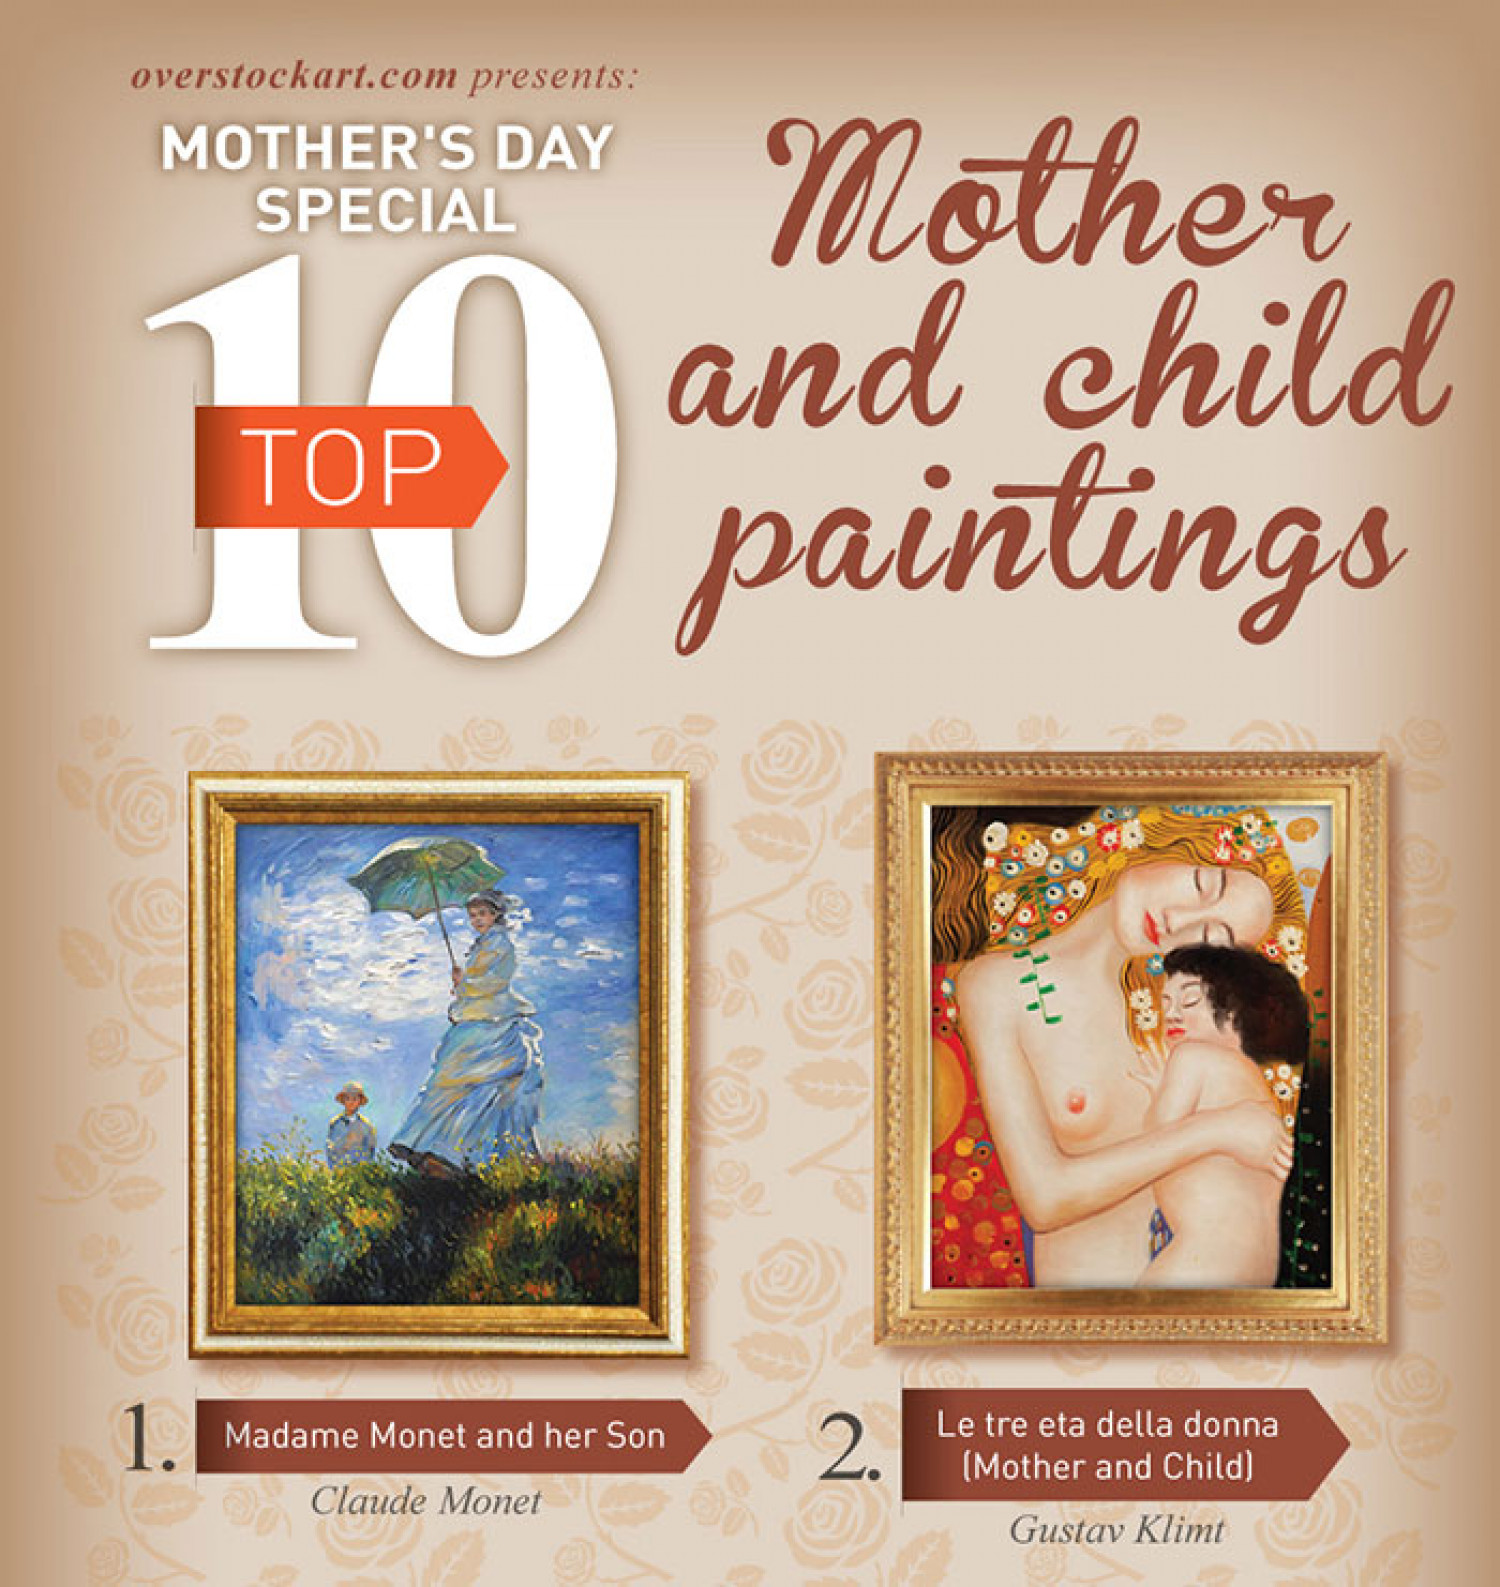 Top 10 Art for Mother's Day 2014 Infographic